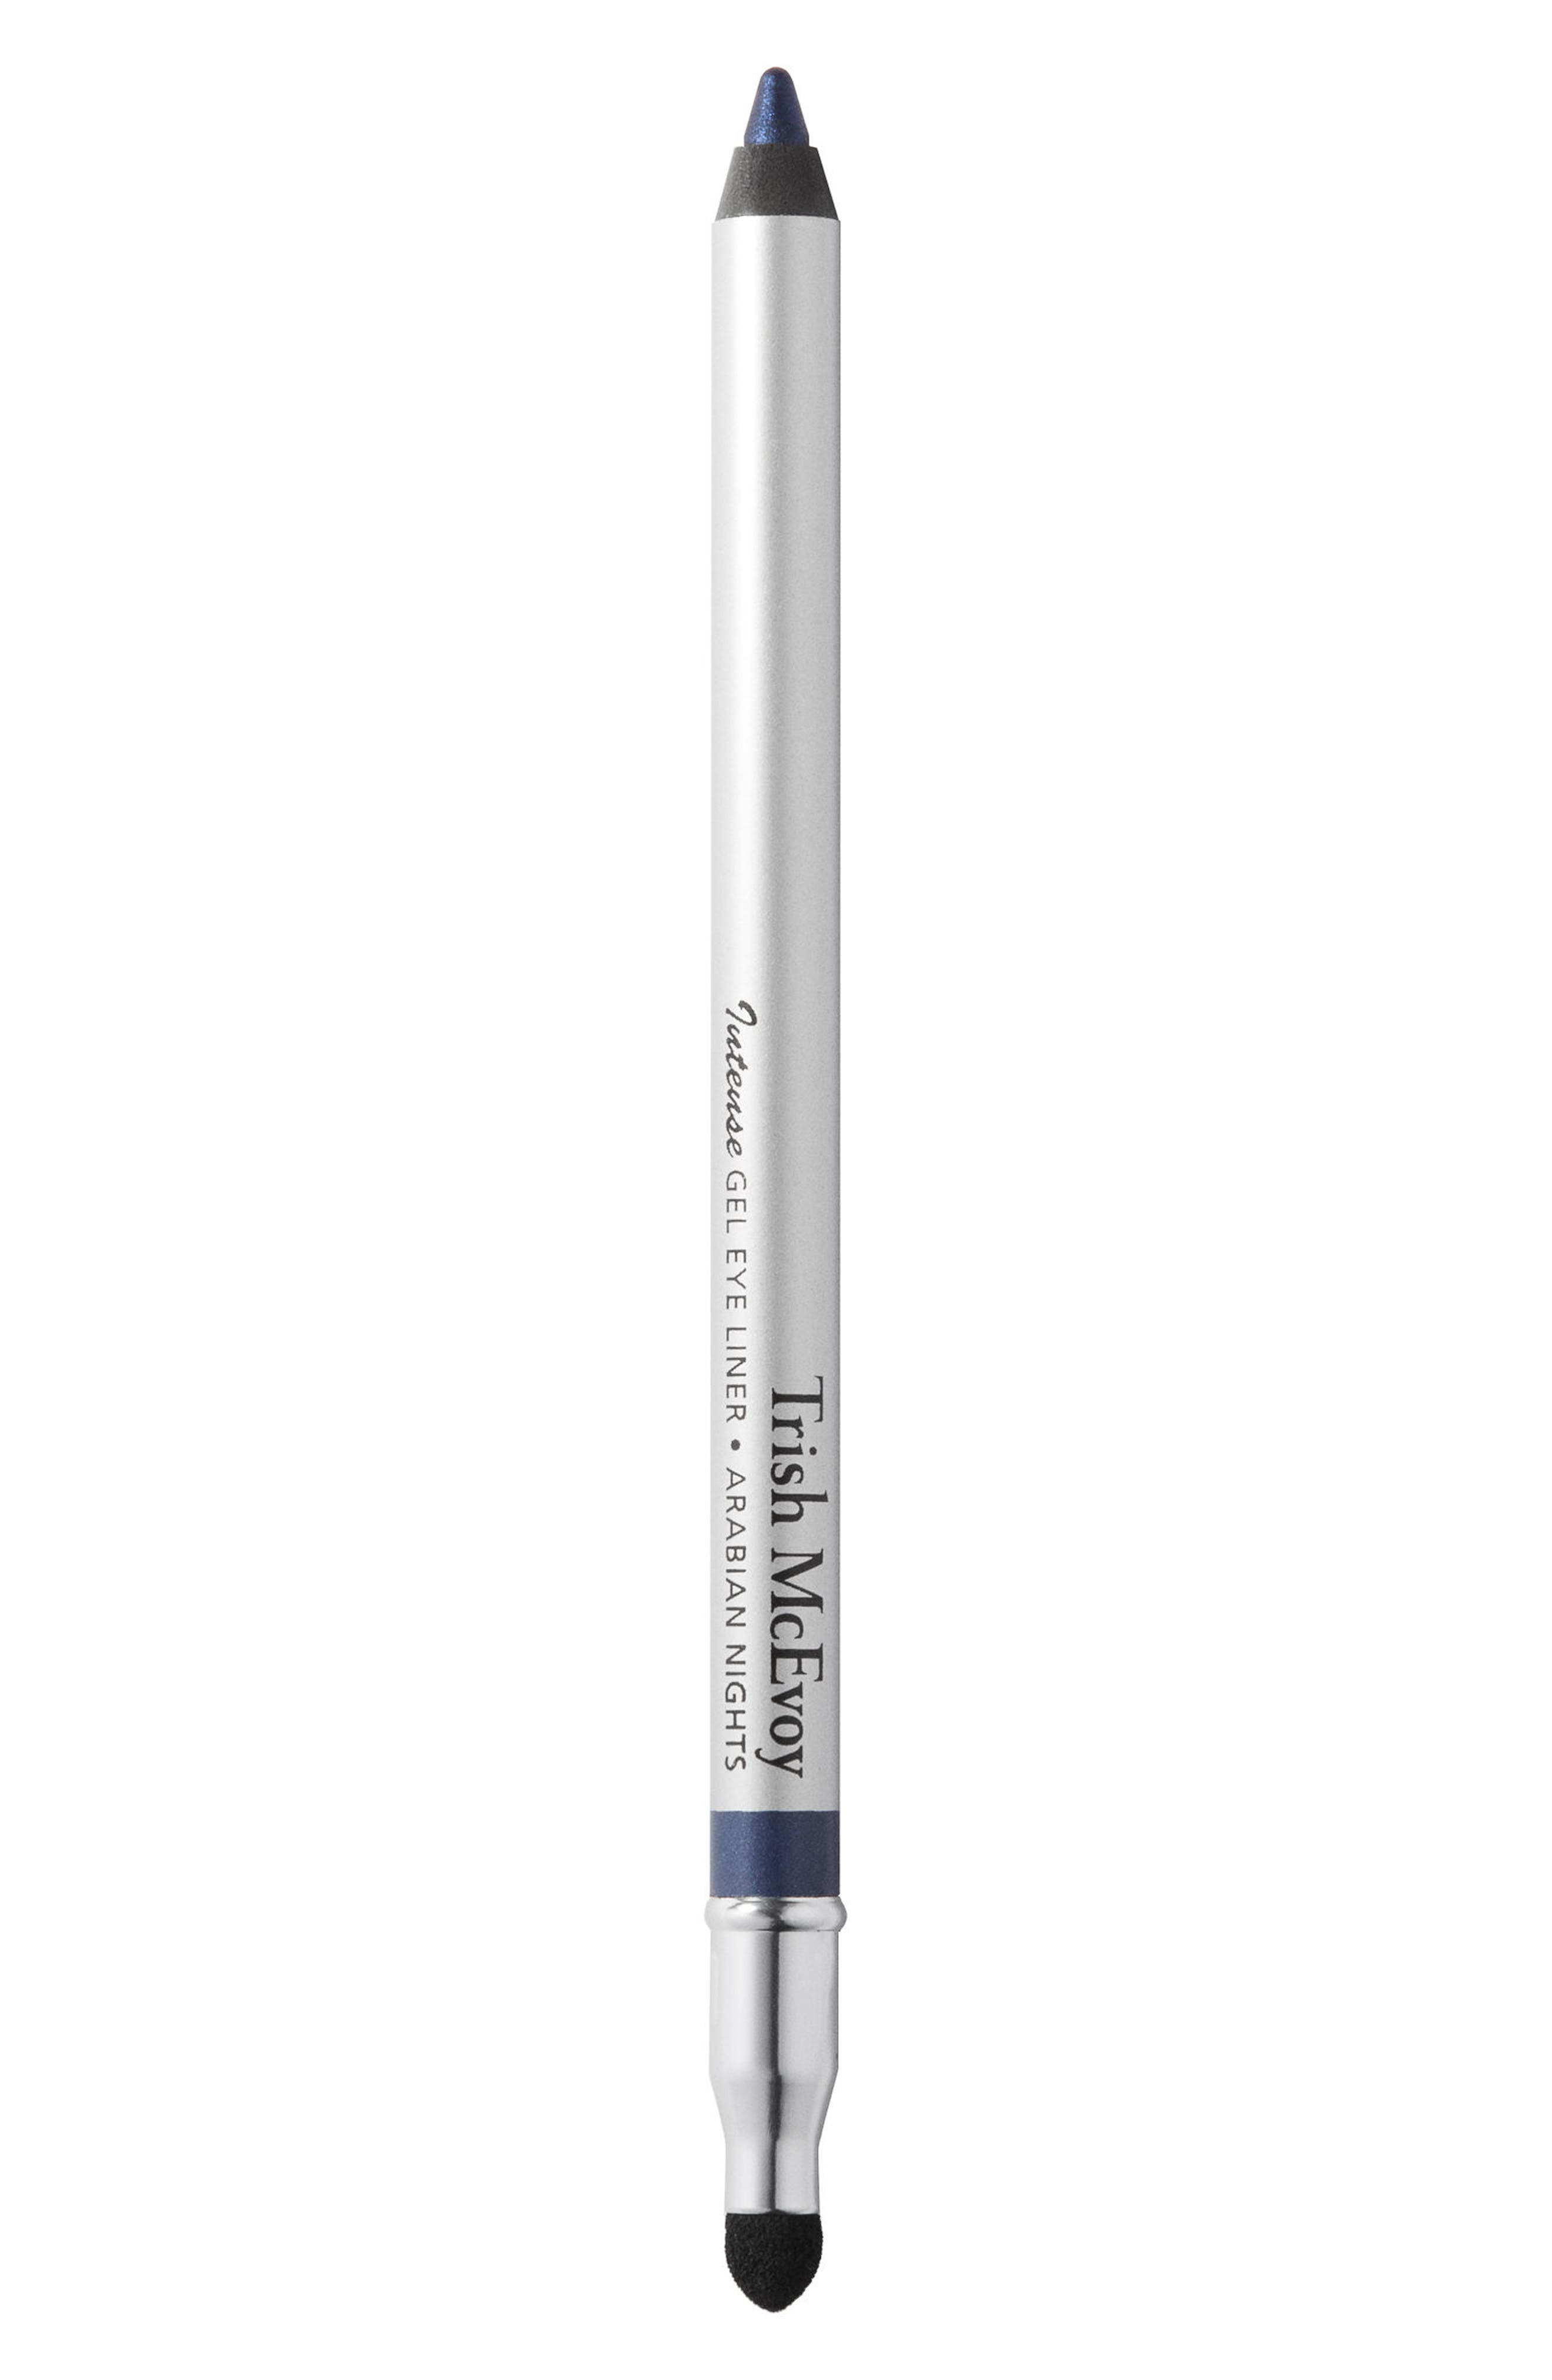 Trish McEvoy 'Intense' Gel Eyeliner Pencil